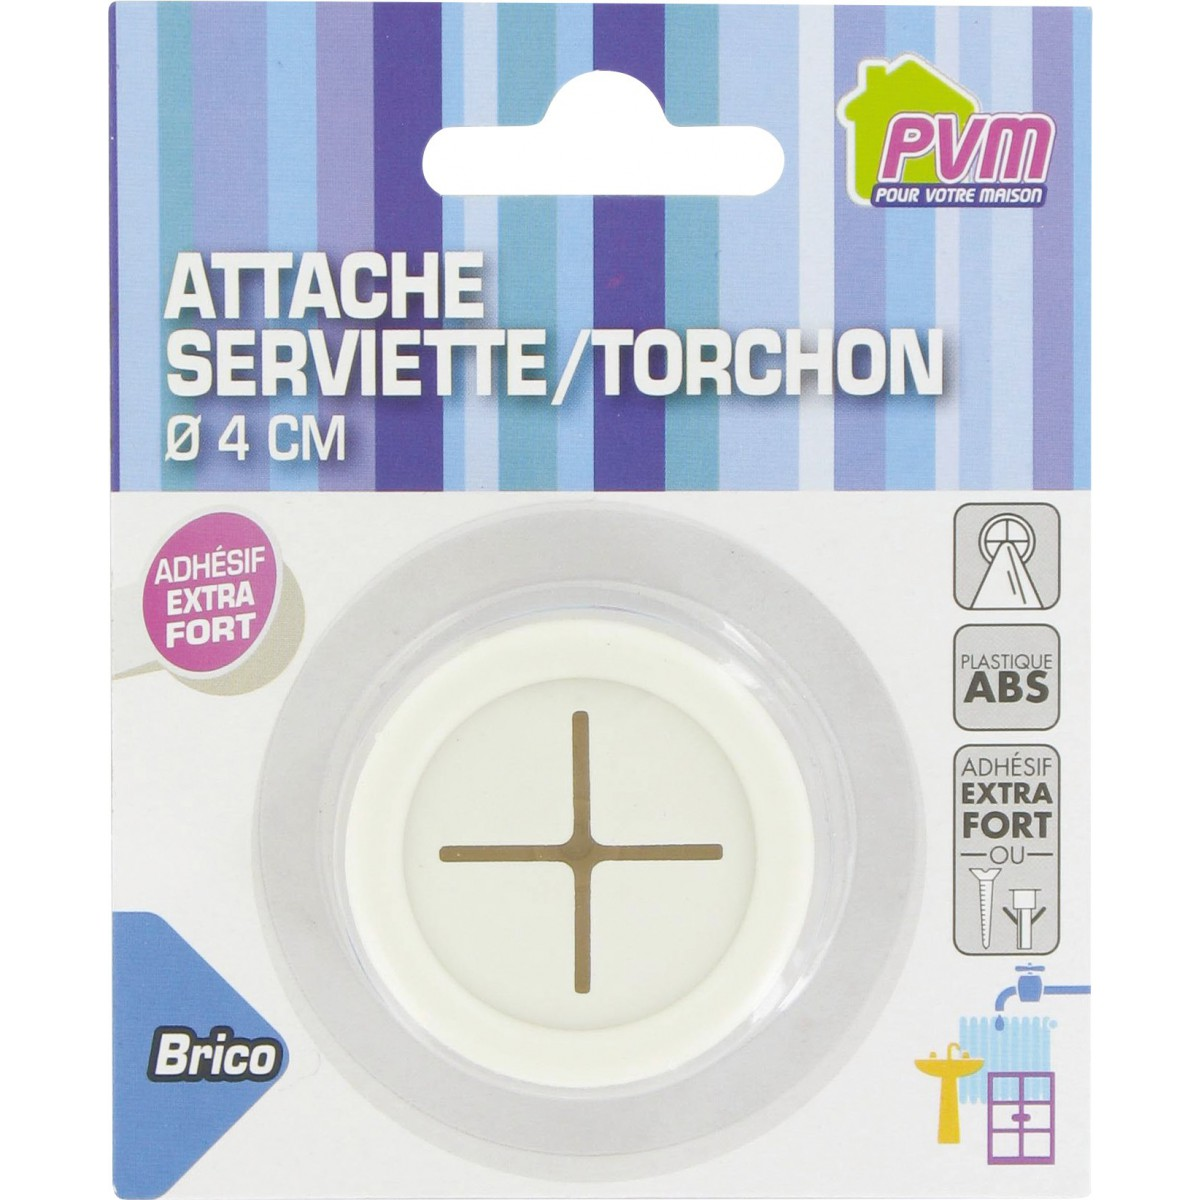 Attache serviette/torchon PVM - Vendu par 1